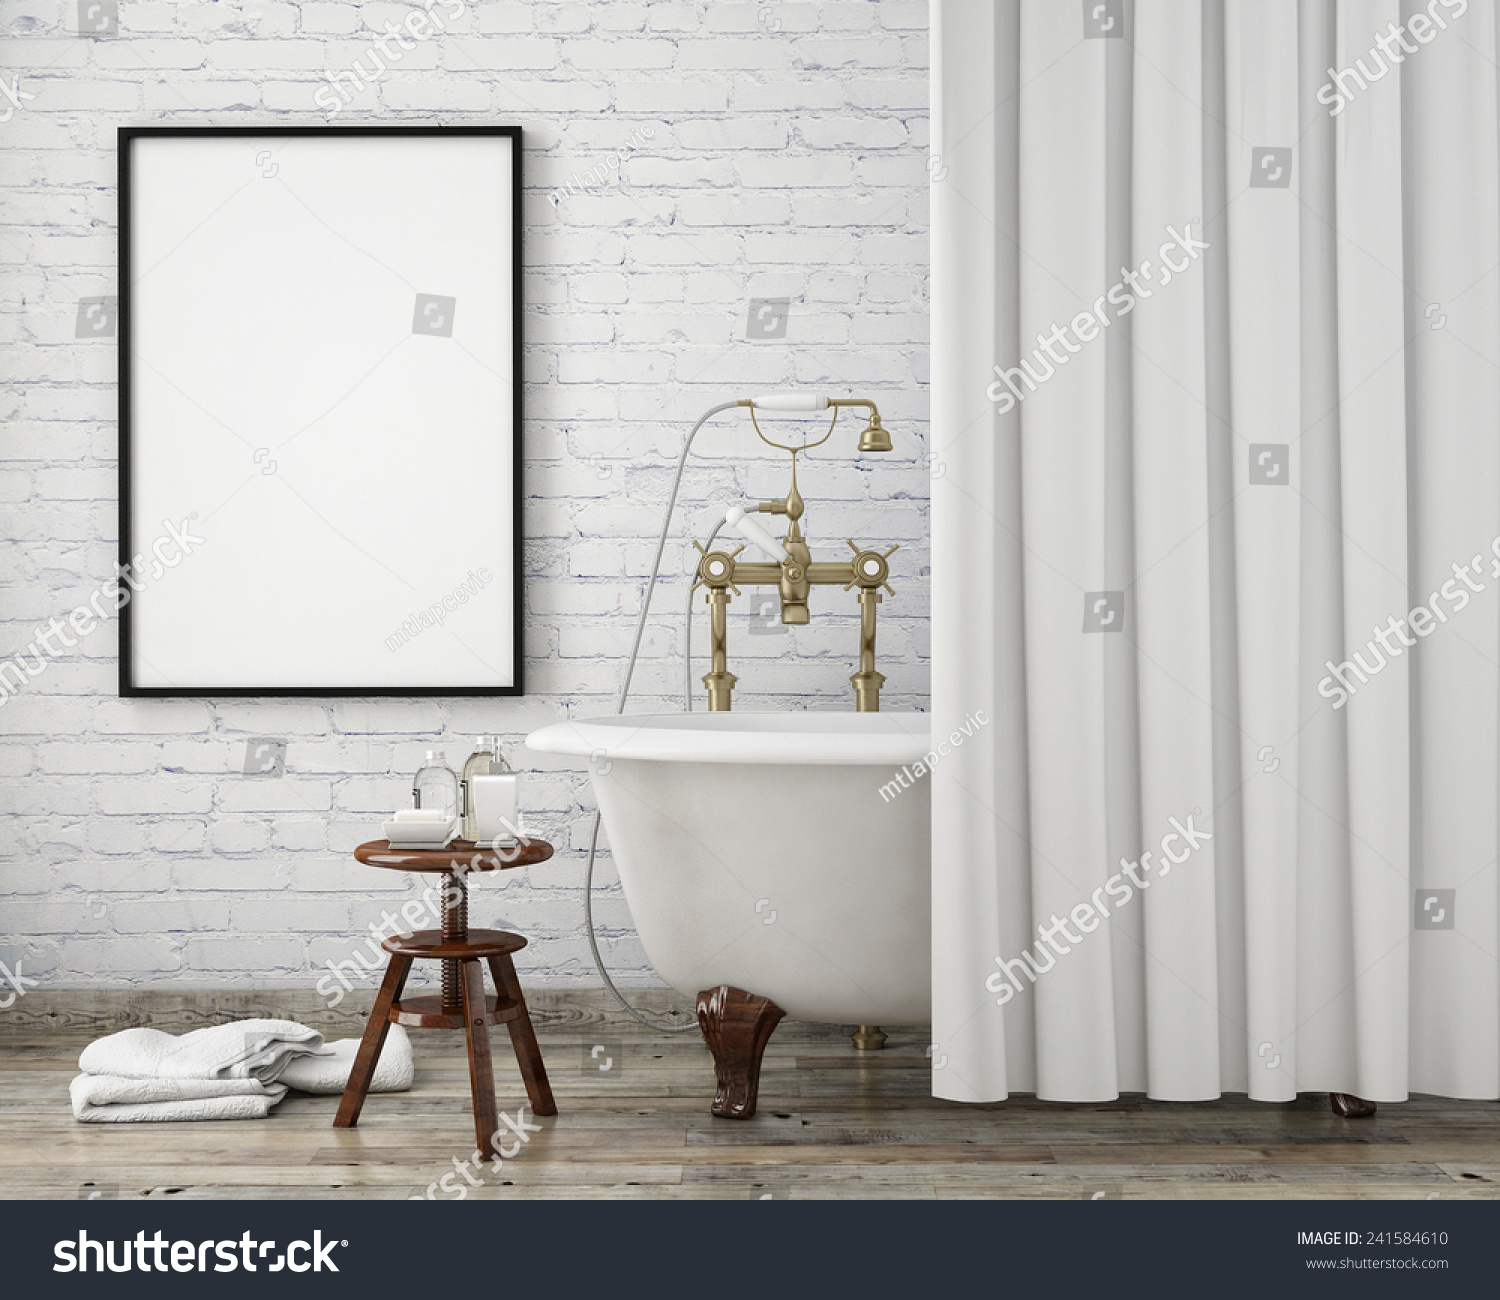 mock up poster frame in vintage hipster bathroom interior background